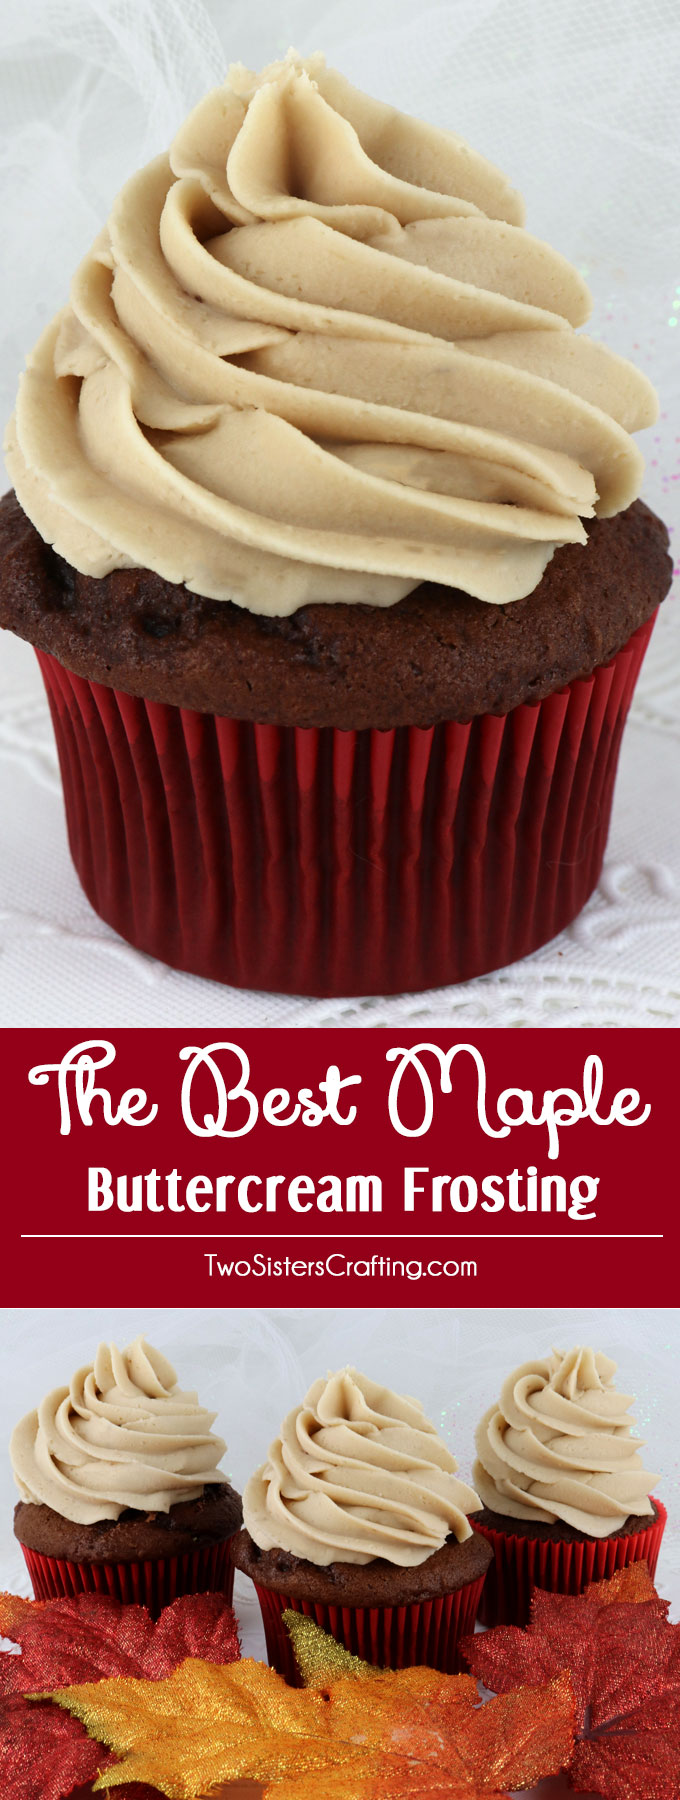 This is definitely The Best Maple Buttercream Frosting we have ever tasted and it is so easy to make. Sweet, creamy and delicious just like the icing on a Maple Donut this homemade icing recipe will wow your family and party guests. It is the perfect Fall frosting for cupcakes, cakes or cookies! Pin this Thanksgiving dessert for later and follow us for more great Frosting recipe ideas.